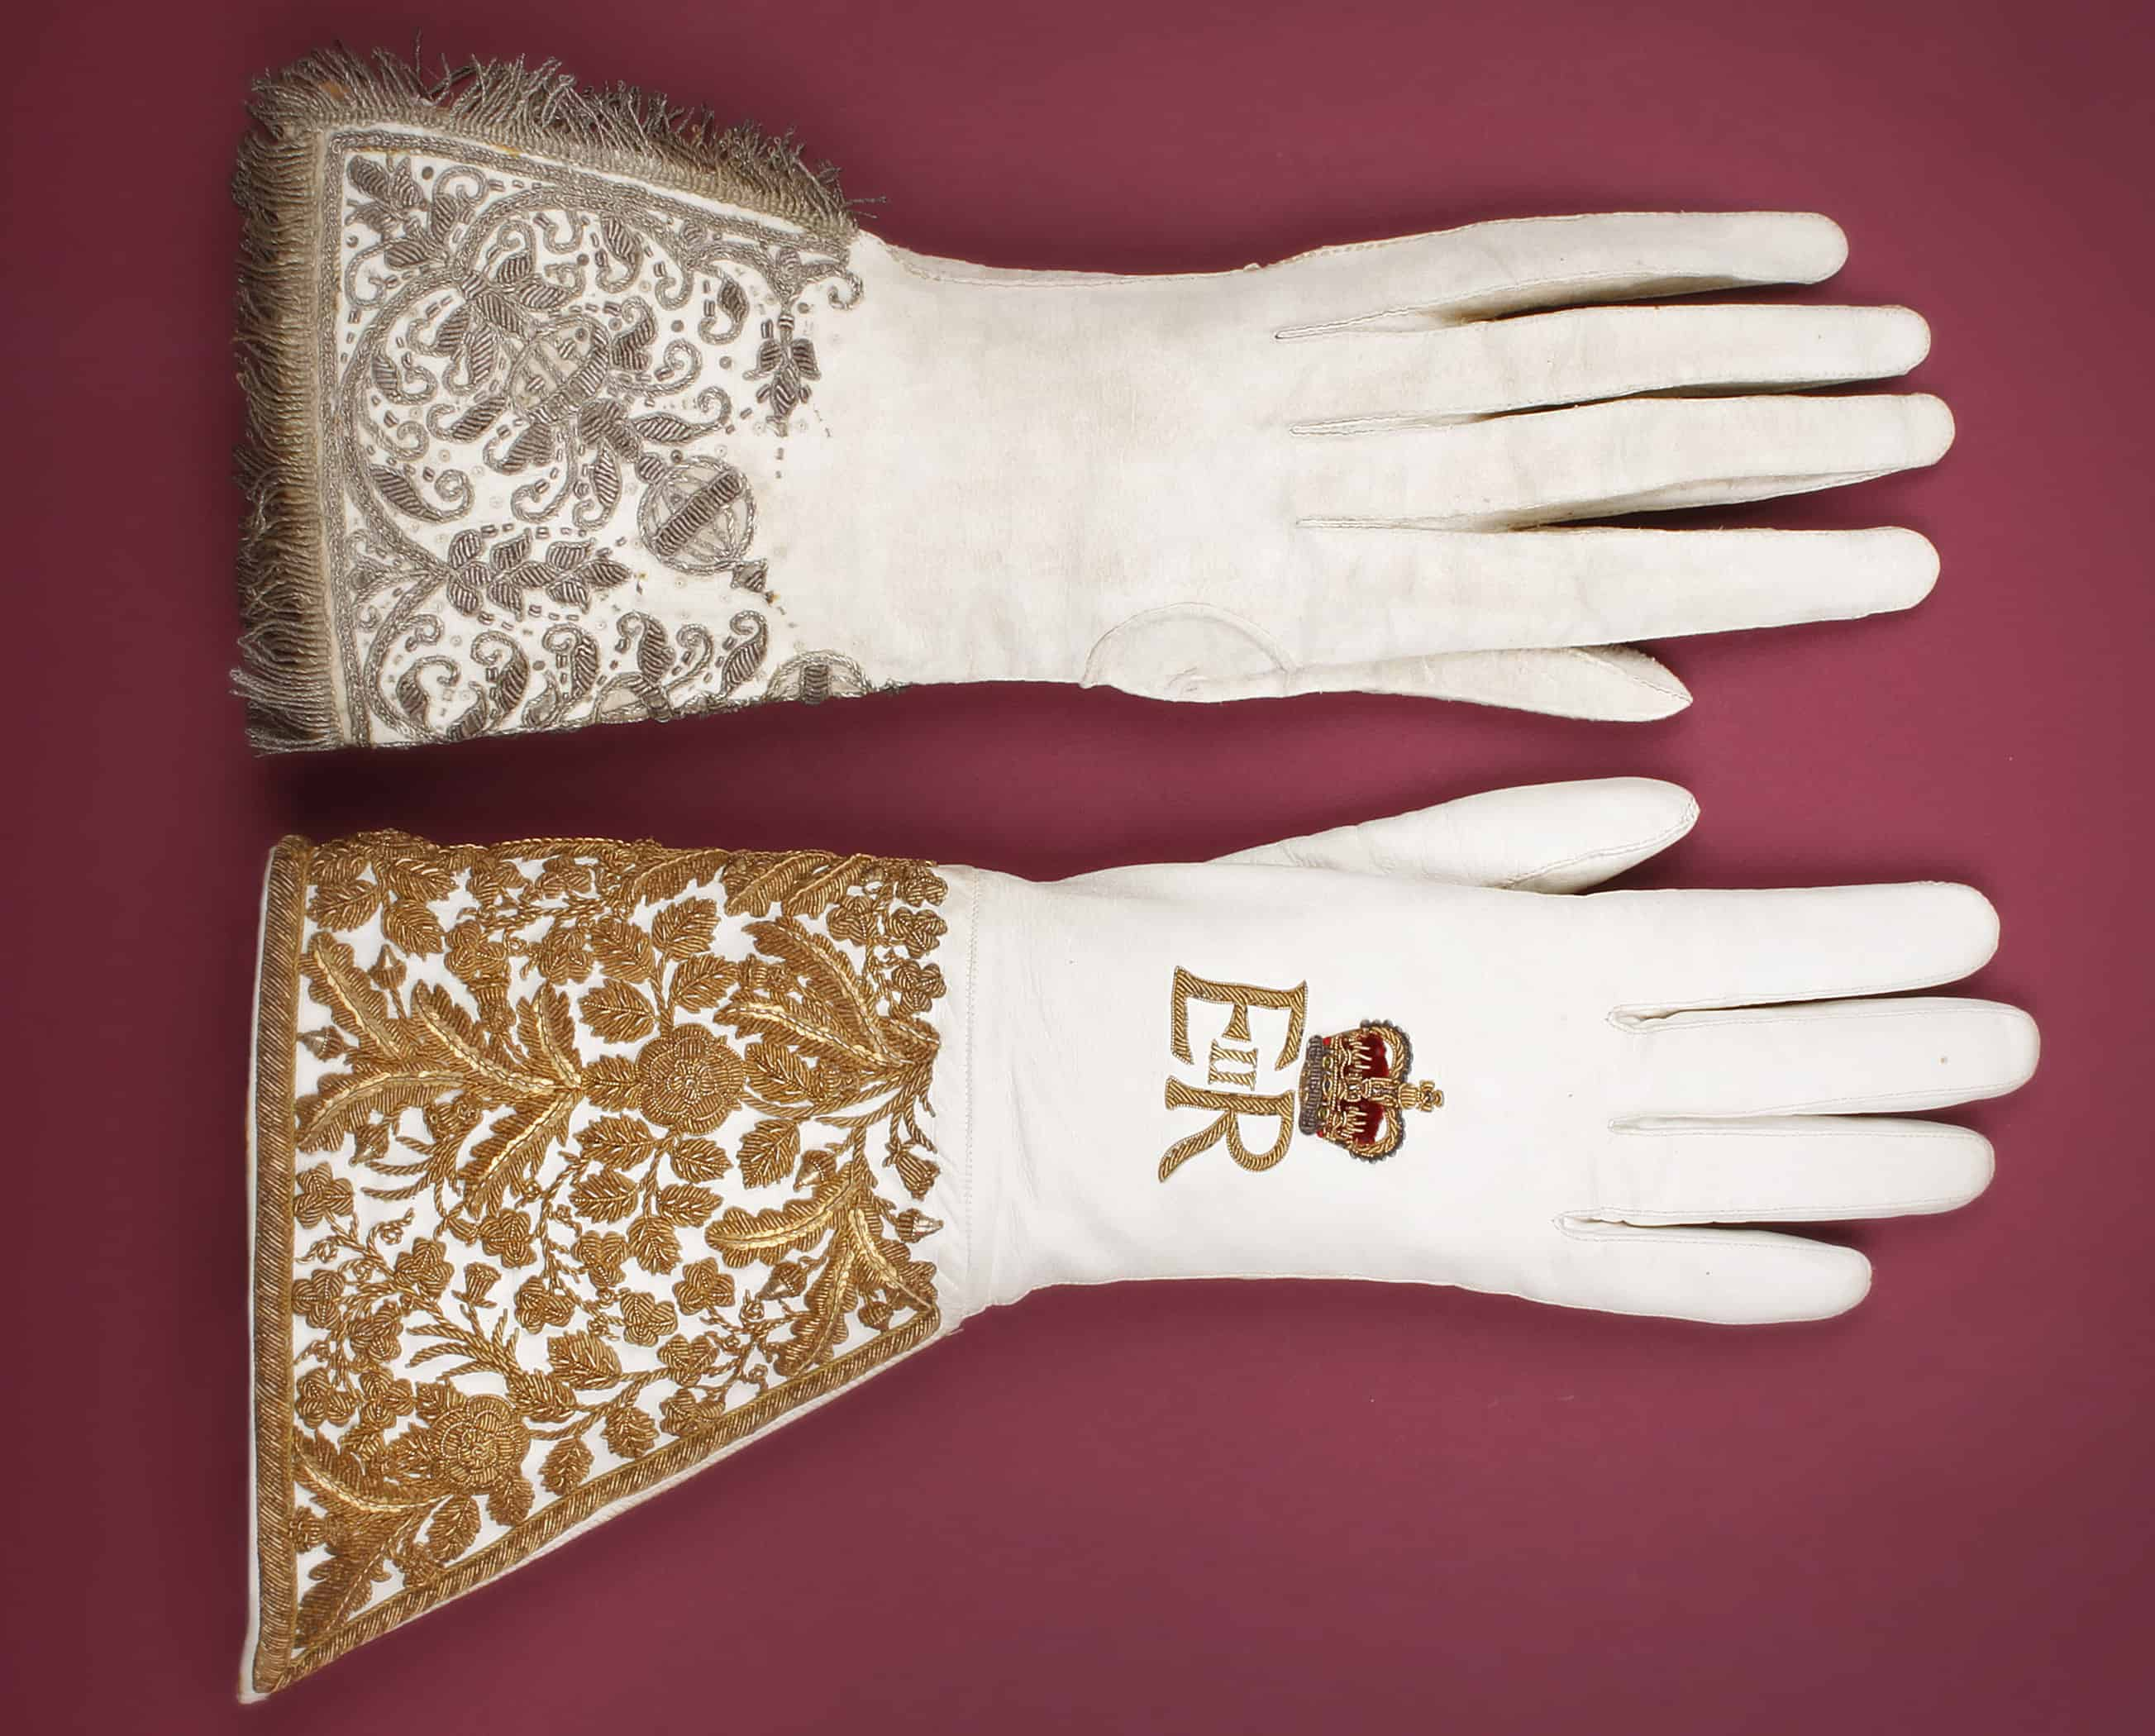 Driving gloves styleforum - Coronation Gloves For Queen Elizabeth Ii Made By Dents